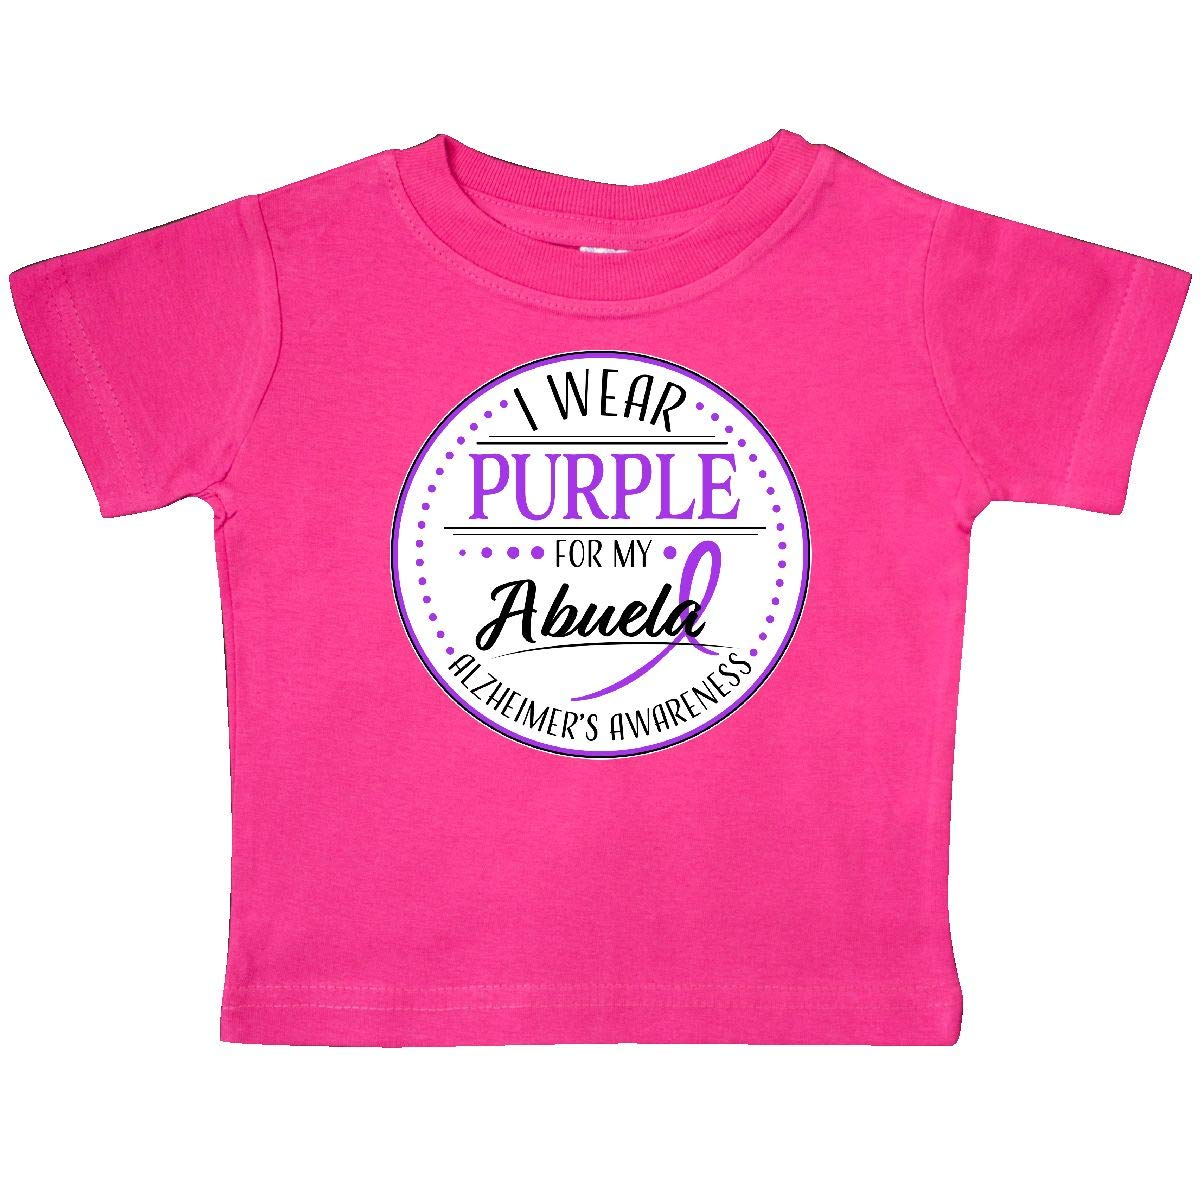 inktastic I Wear Purple for My Abuela Alzheimers Awareness Baby T-Shirt